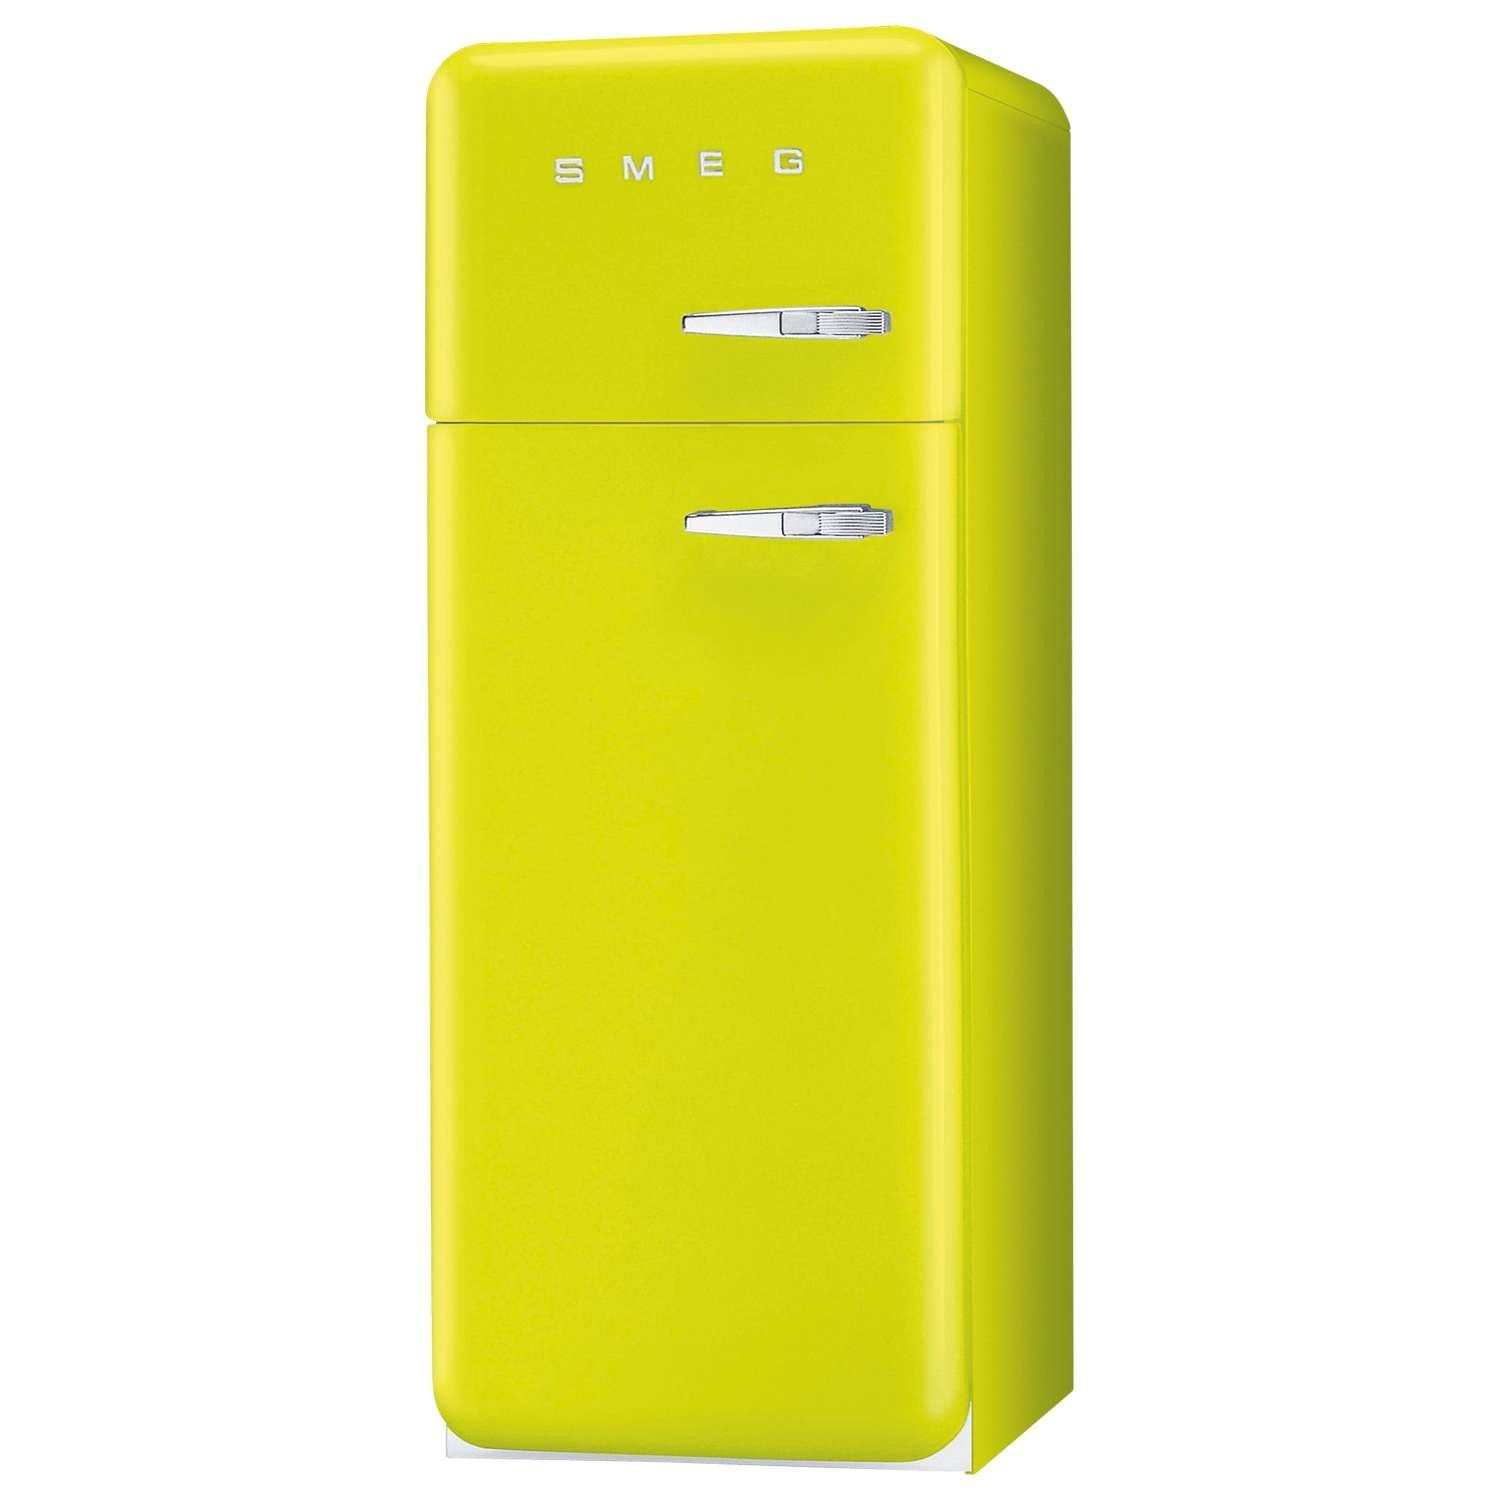 Yellow Fridge Freezer Old Fashioned Colourful Fridge Coxandcoxkitchen Ideas